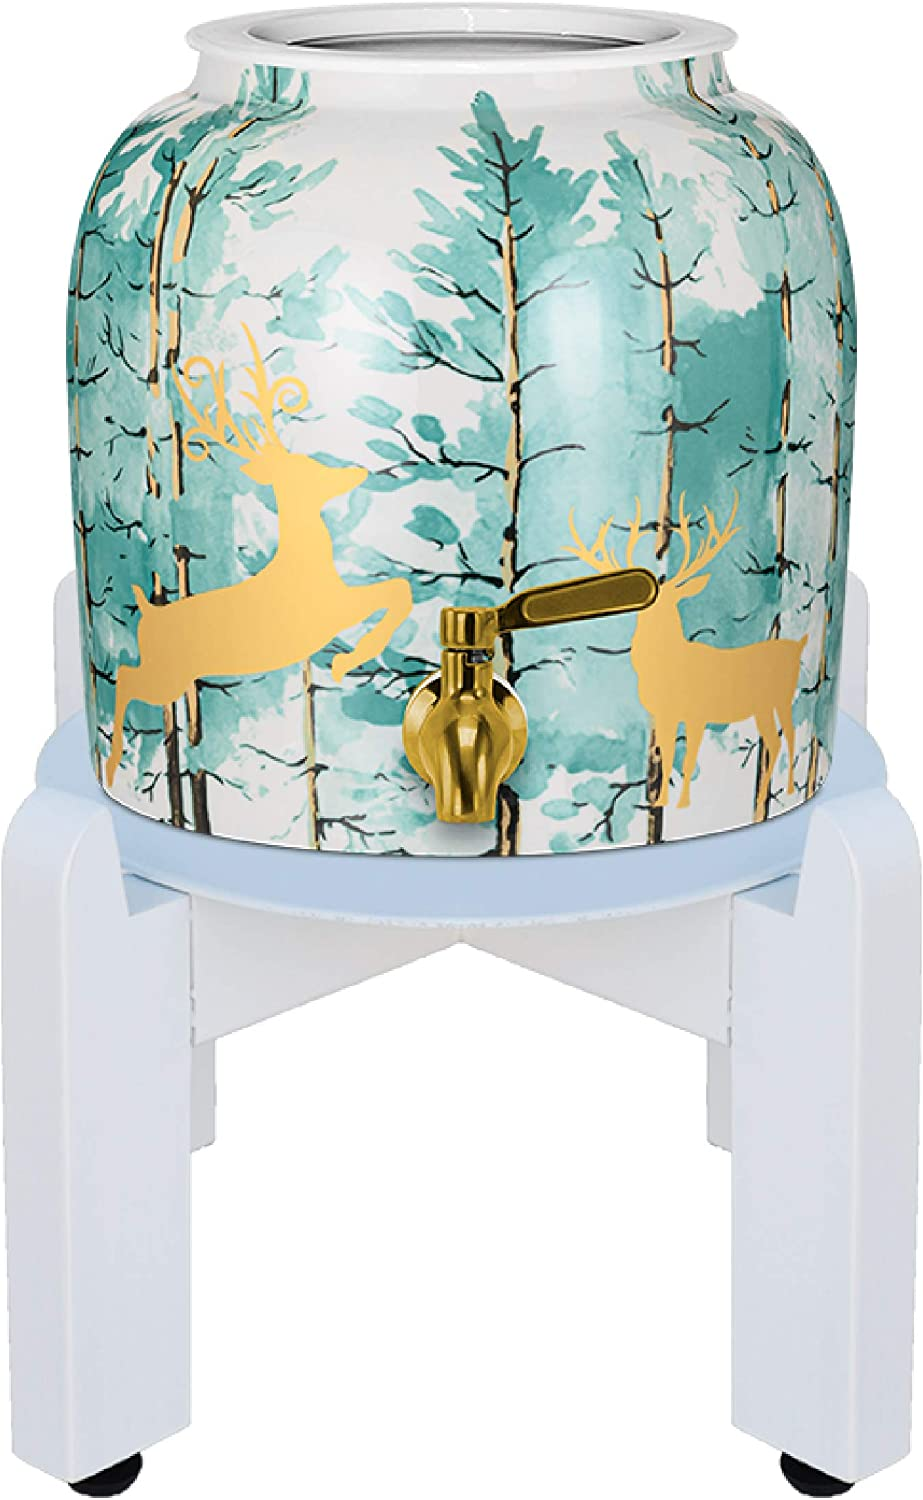 Geo Premium Porcelain Crock Water Dispenser (Nature Series) w/8 Inch Wood Stand, Ceramic Lid, Stainless Steel Spigot Included (Deer and Pine Trees Design)